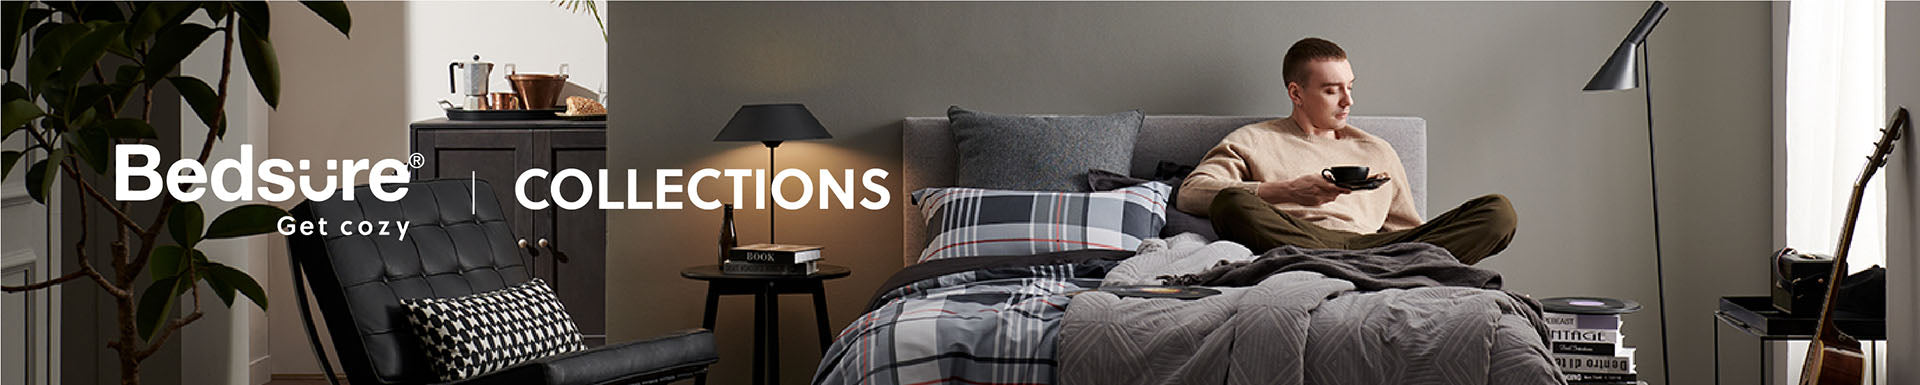 bedsure collections